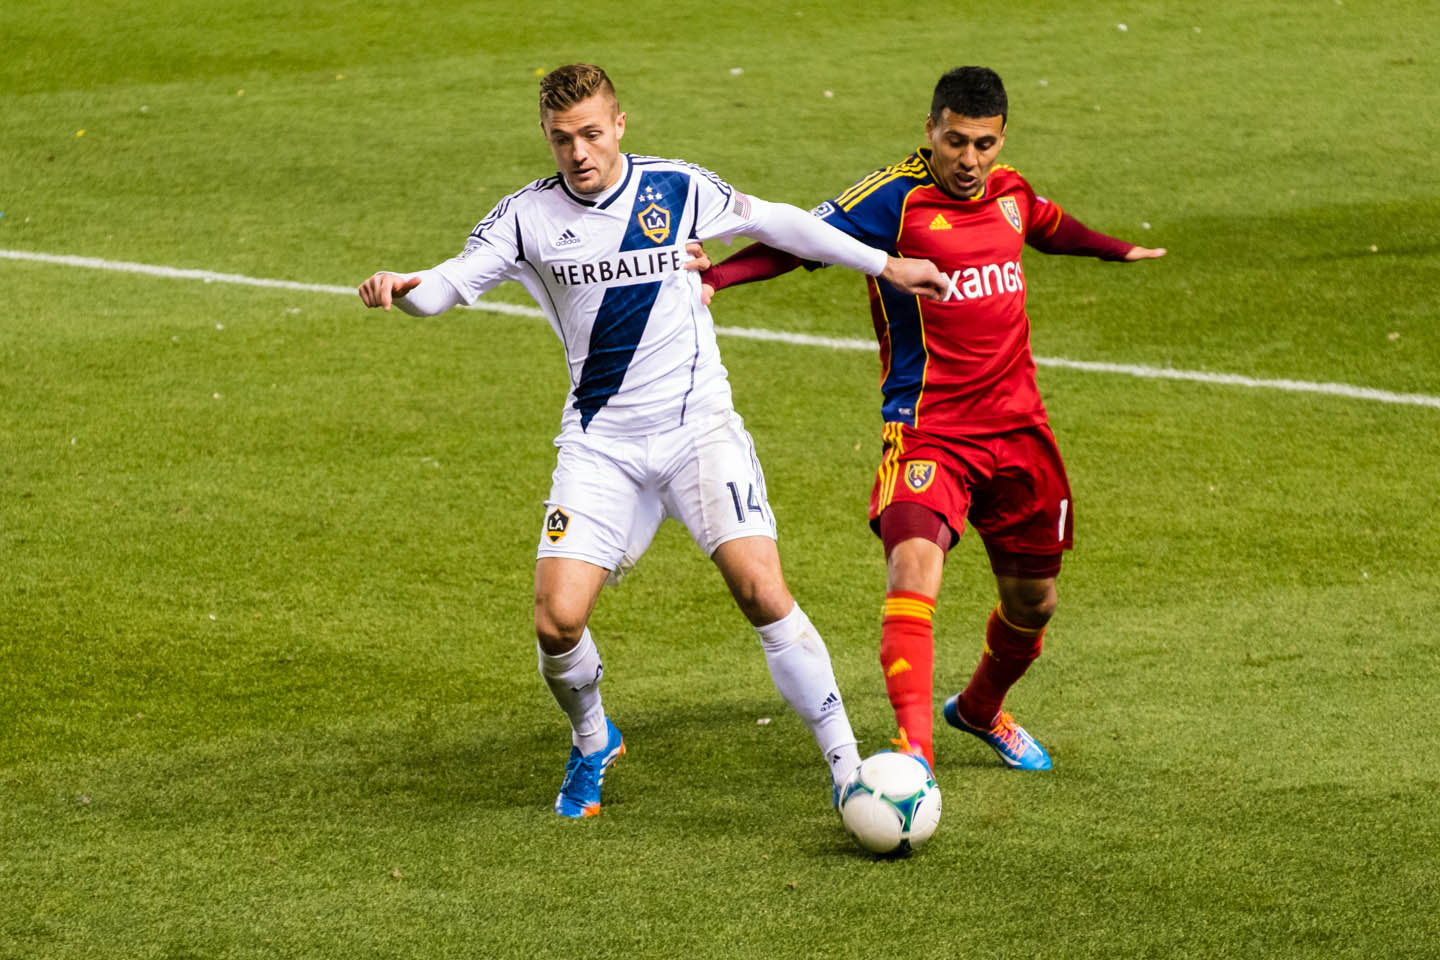 Robbie Rogers and Tony Beltran fight for the soccer ball